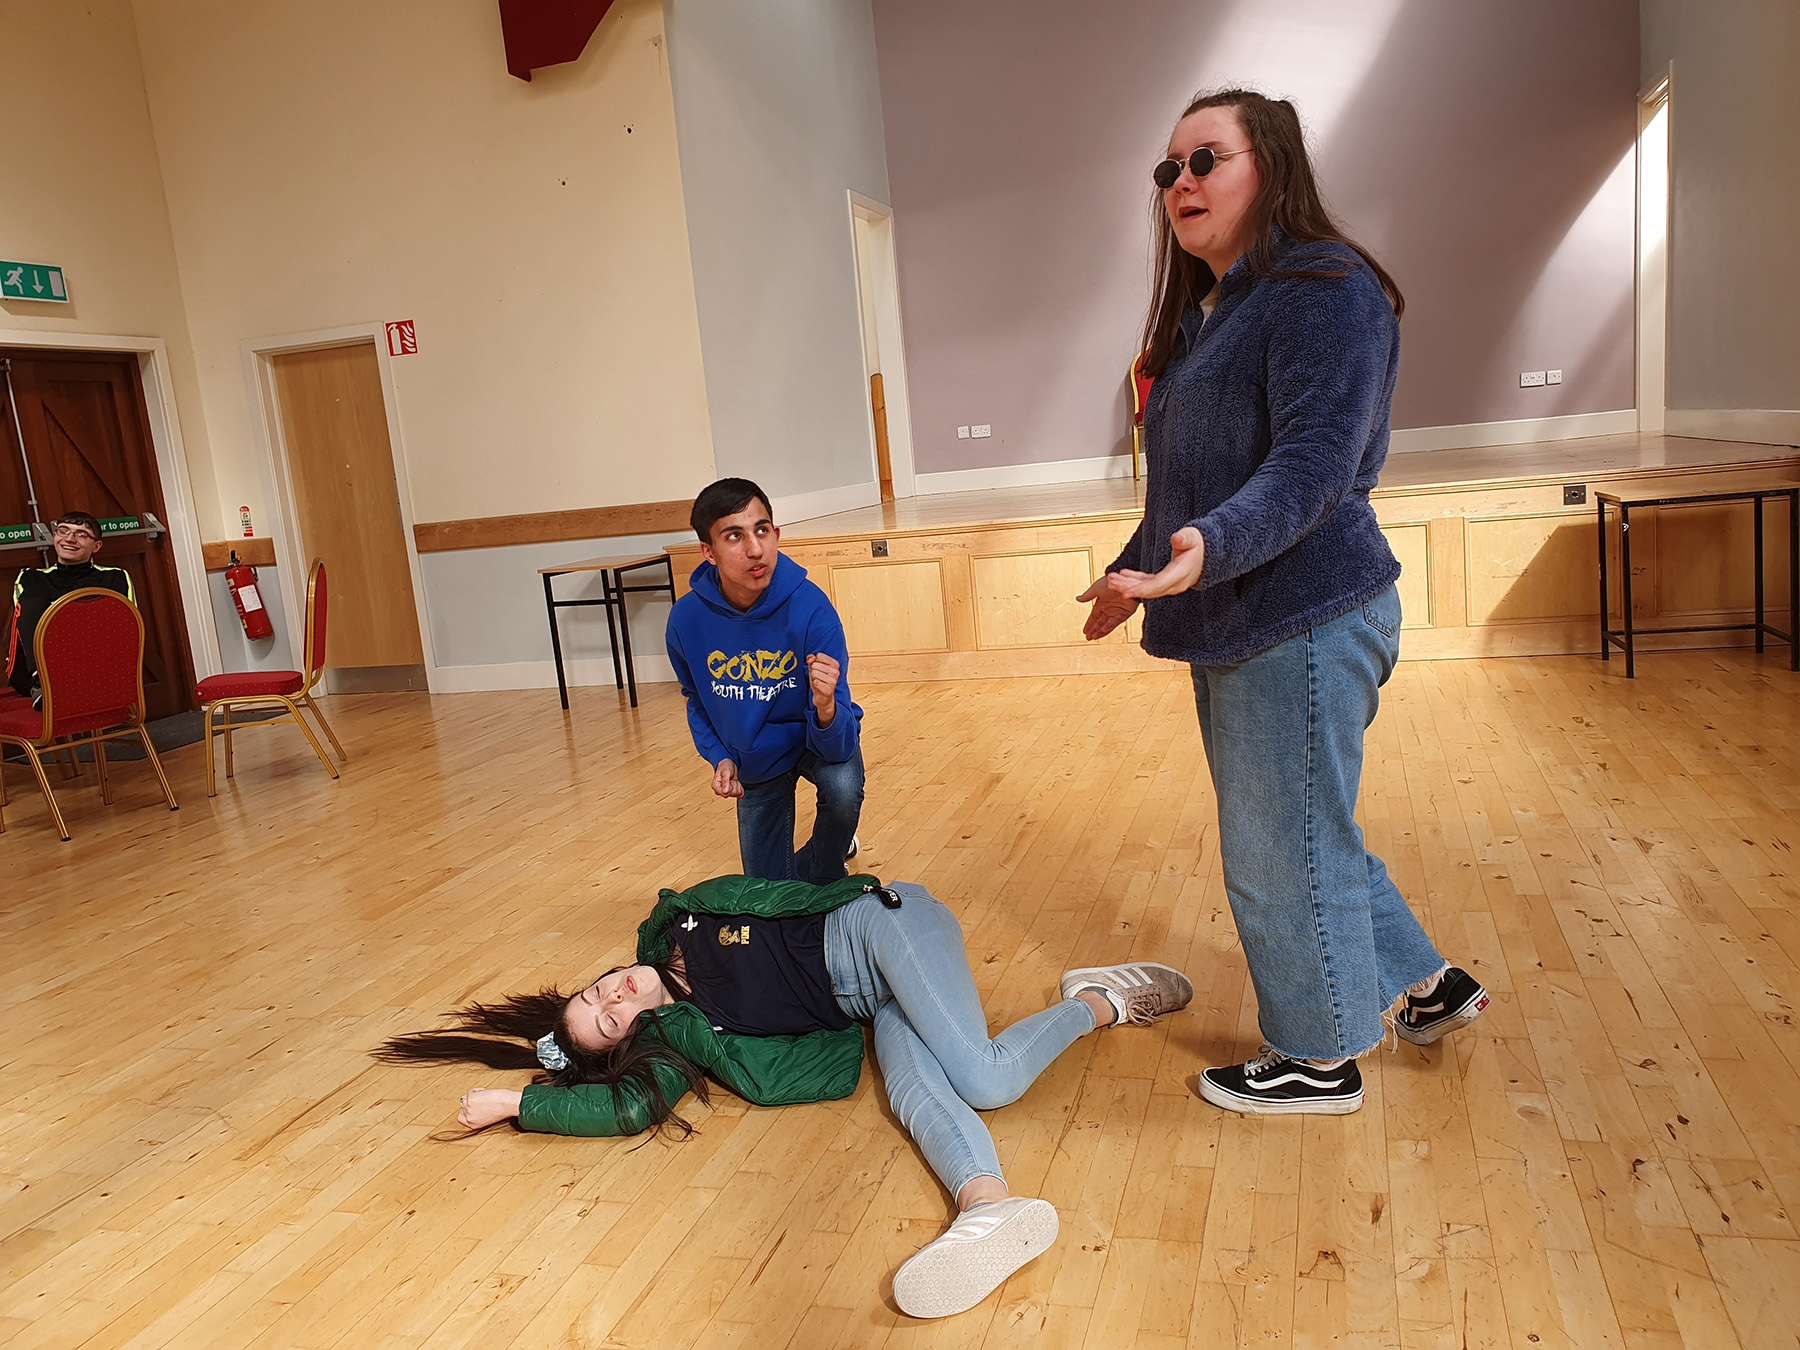 Term 3 (May-June 2019) | Gonzo Youth Theatre